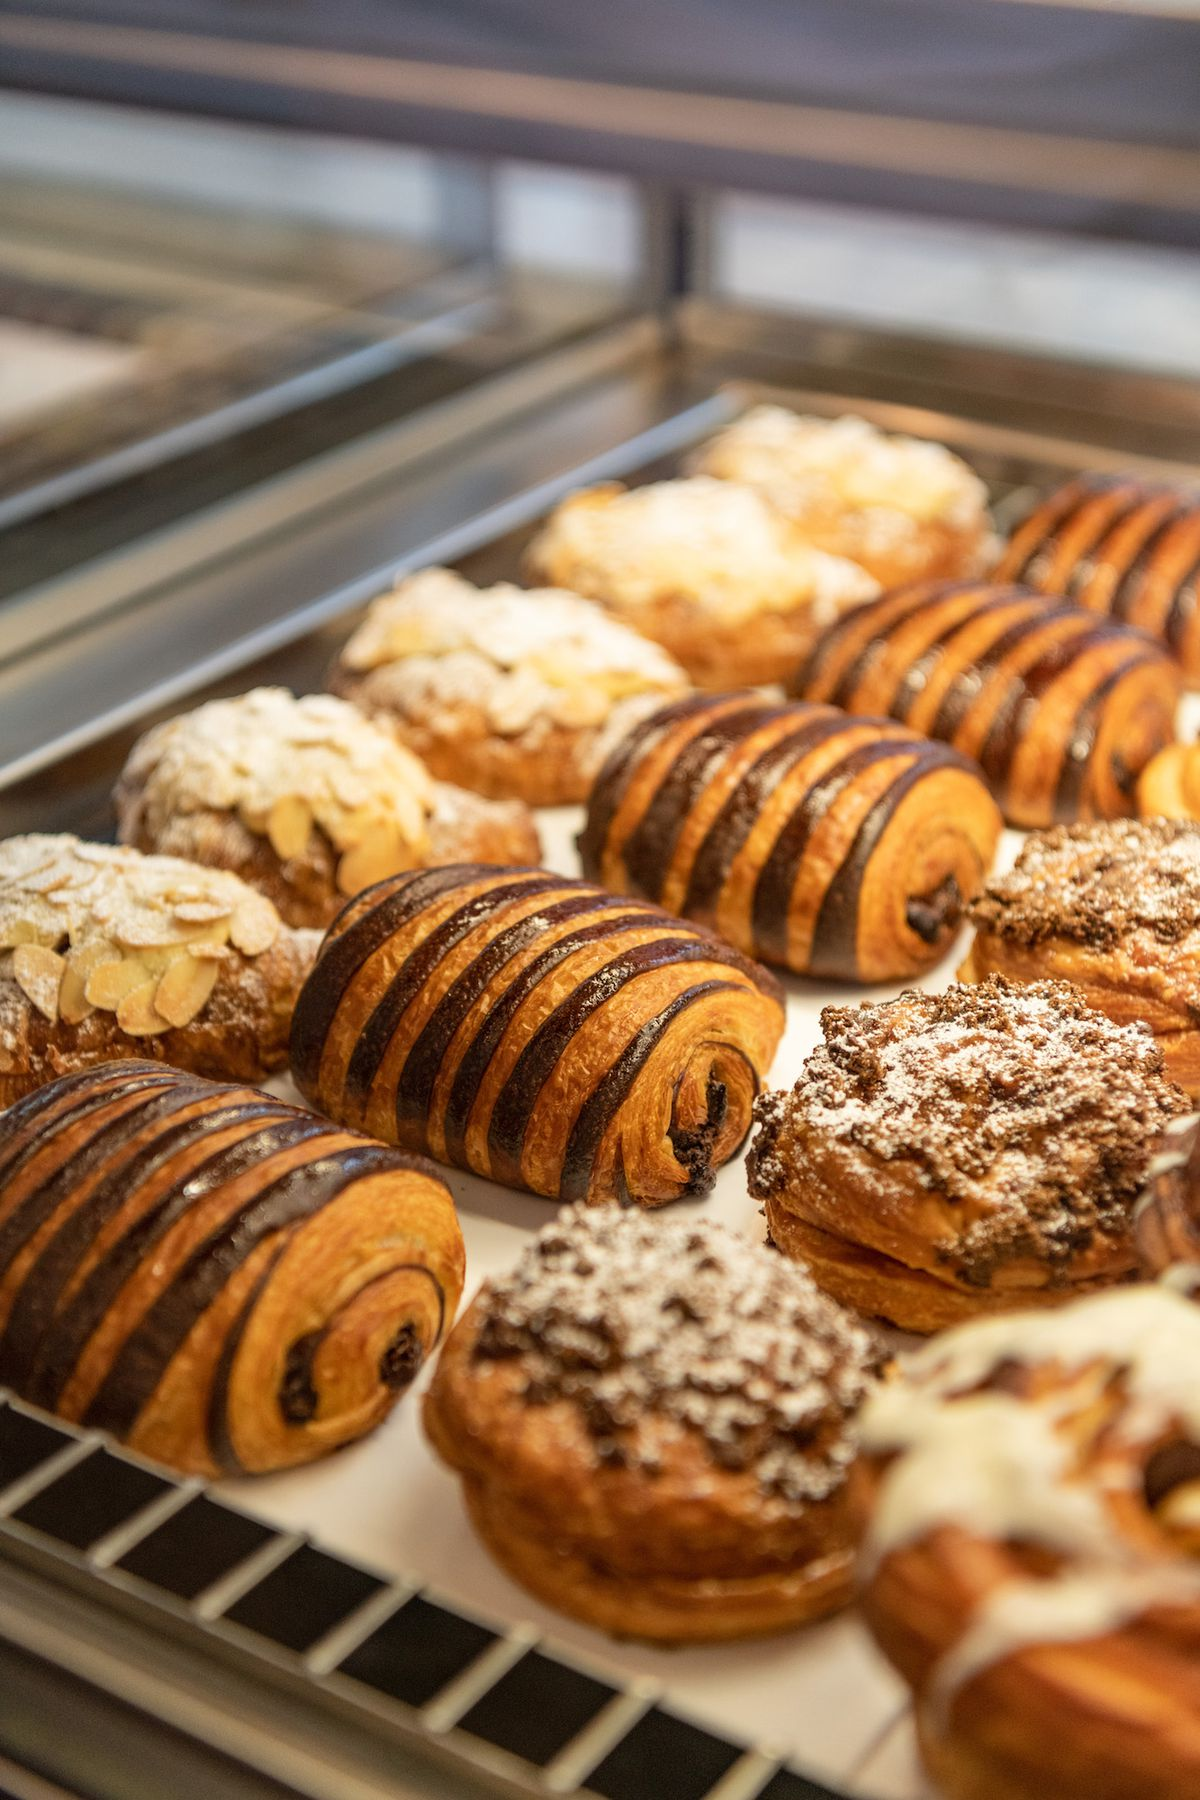 Bianca Bakery Turns Out Impressive Breads and Pastries in Culver City - Eater LA